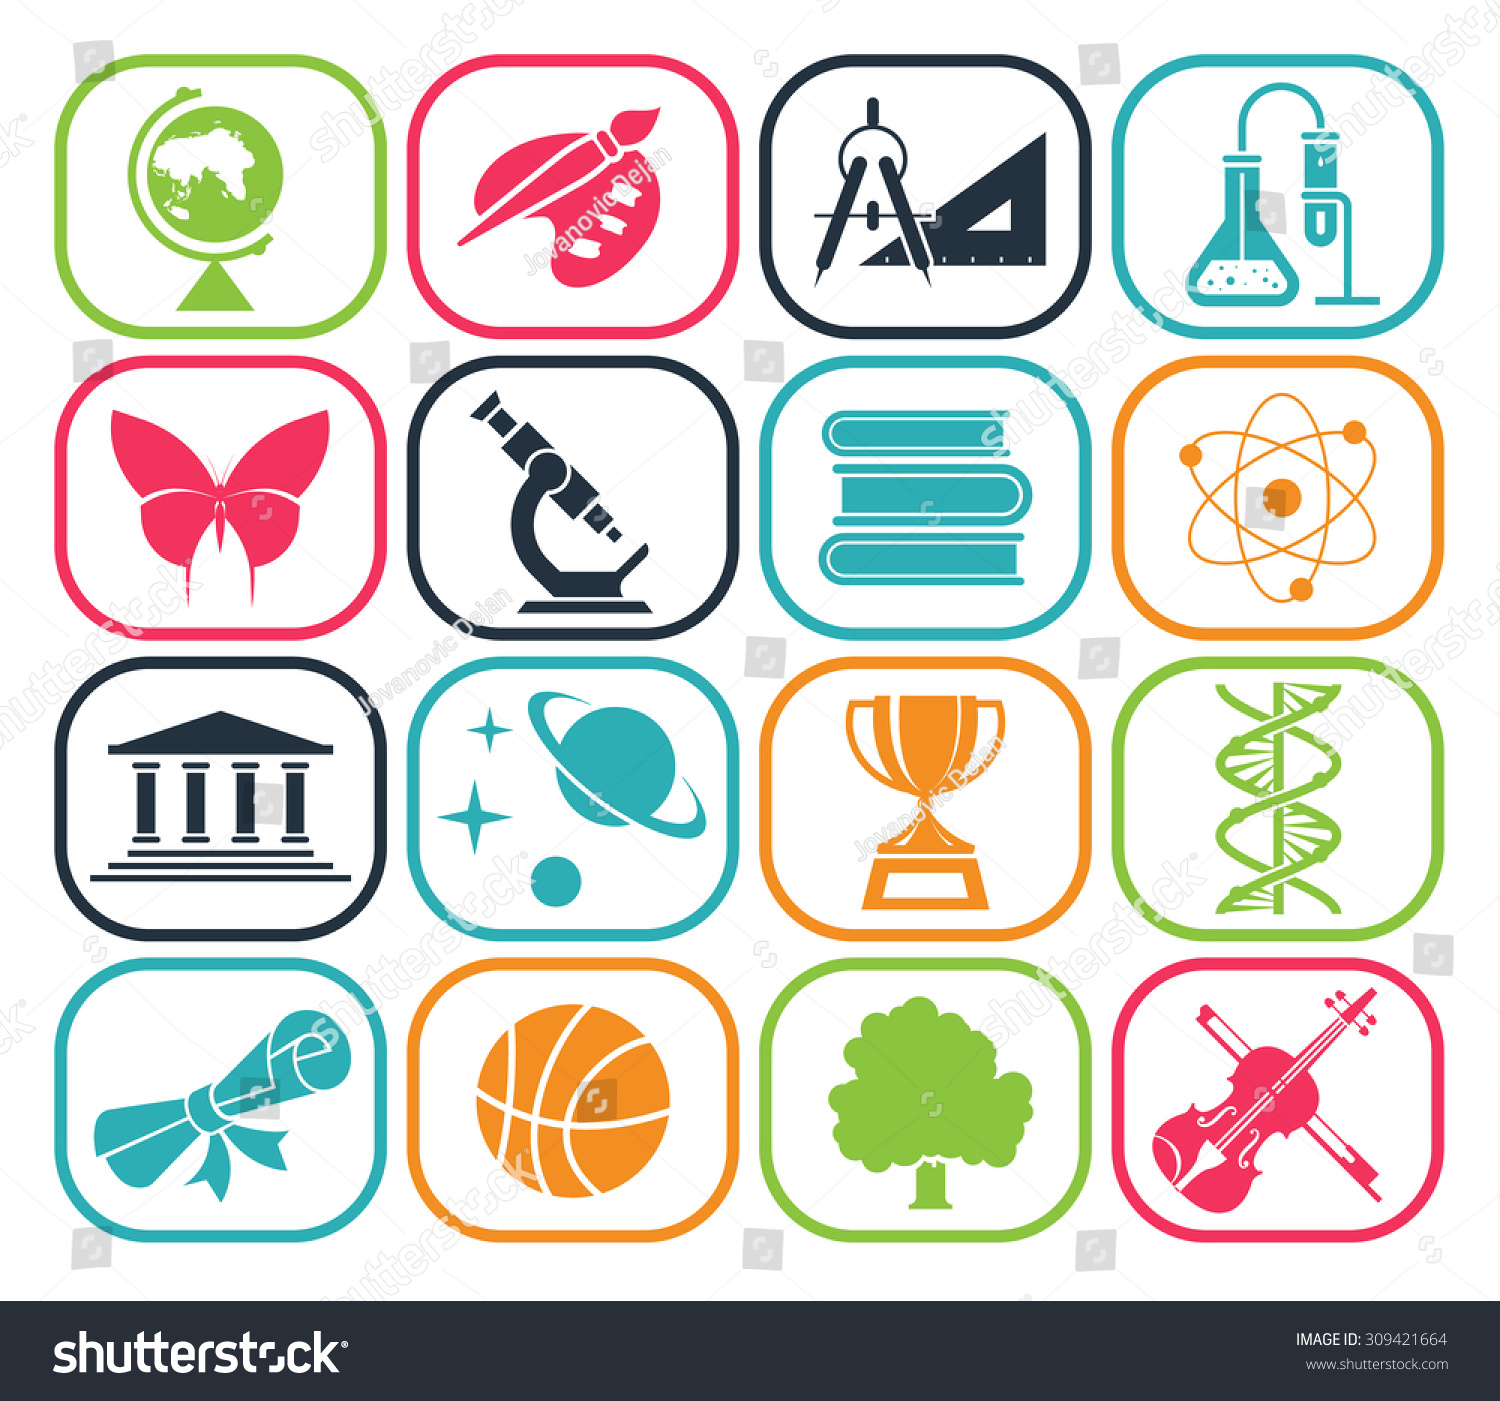 Collection Icons Presenting Different School Subjects Stock Vector ...